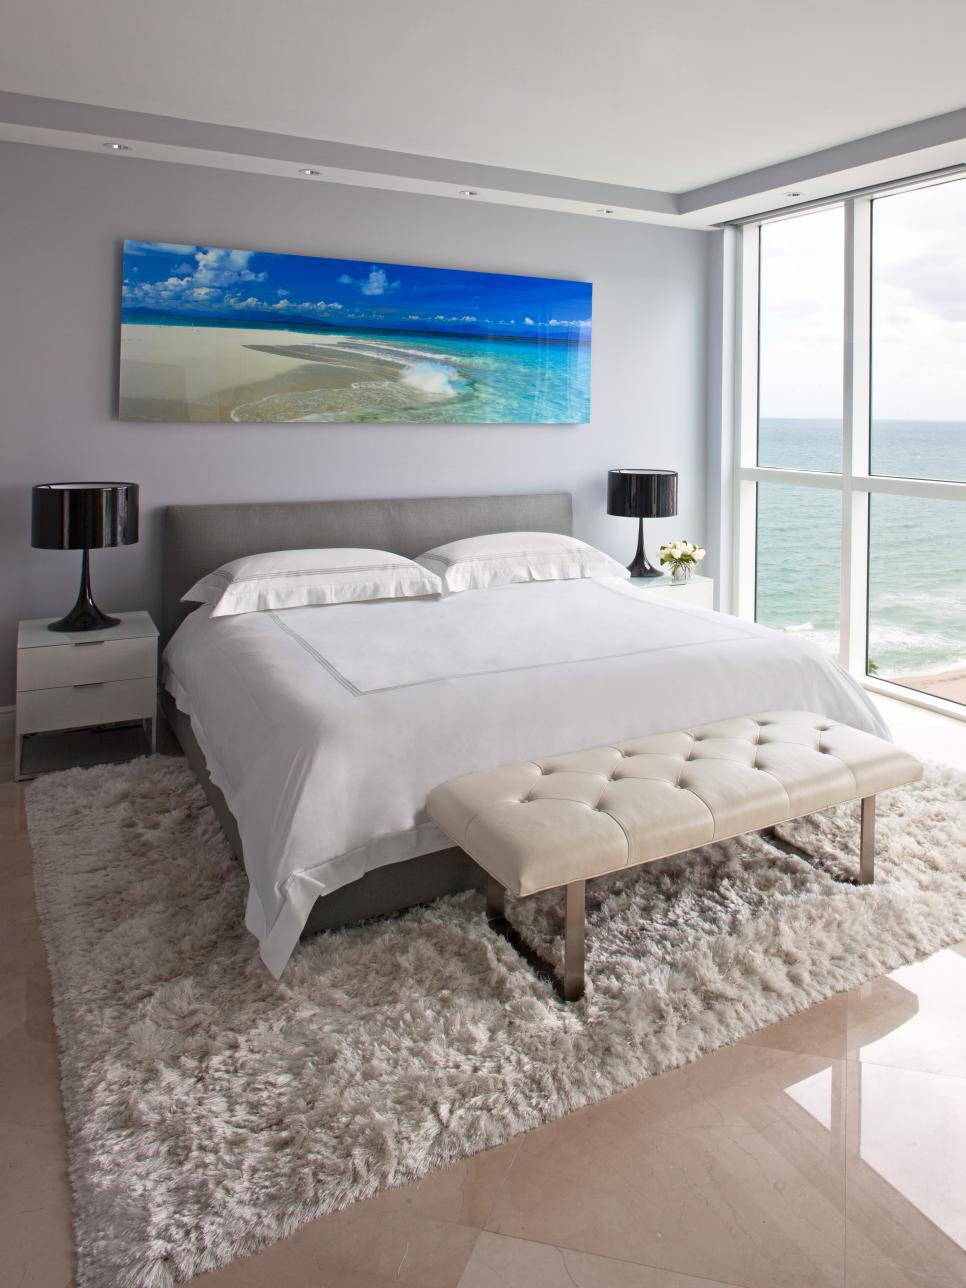 Contemporary Light Gray Bedroom With Ocean Artwork and Ocean View